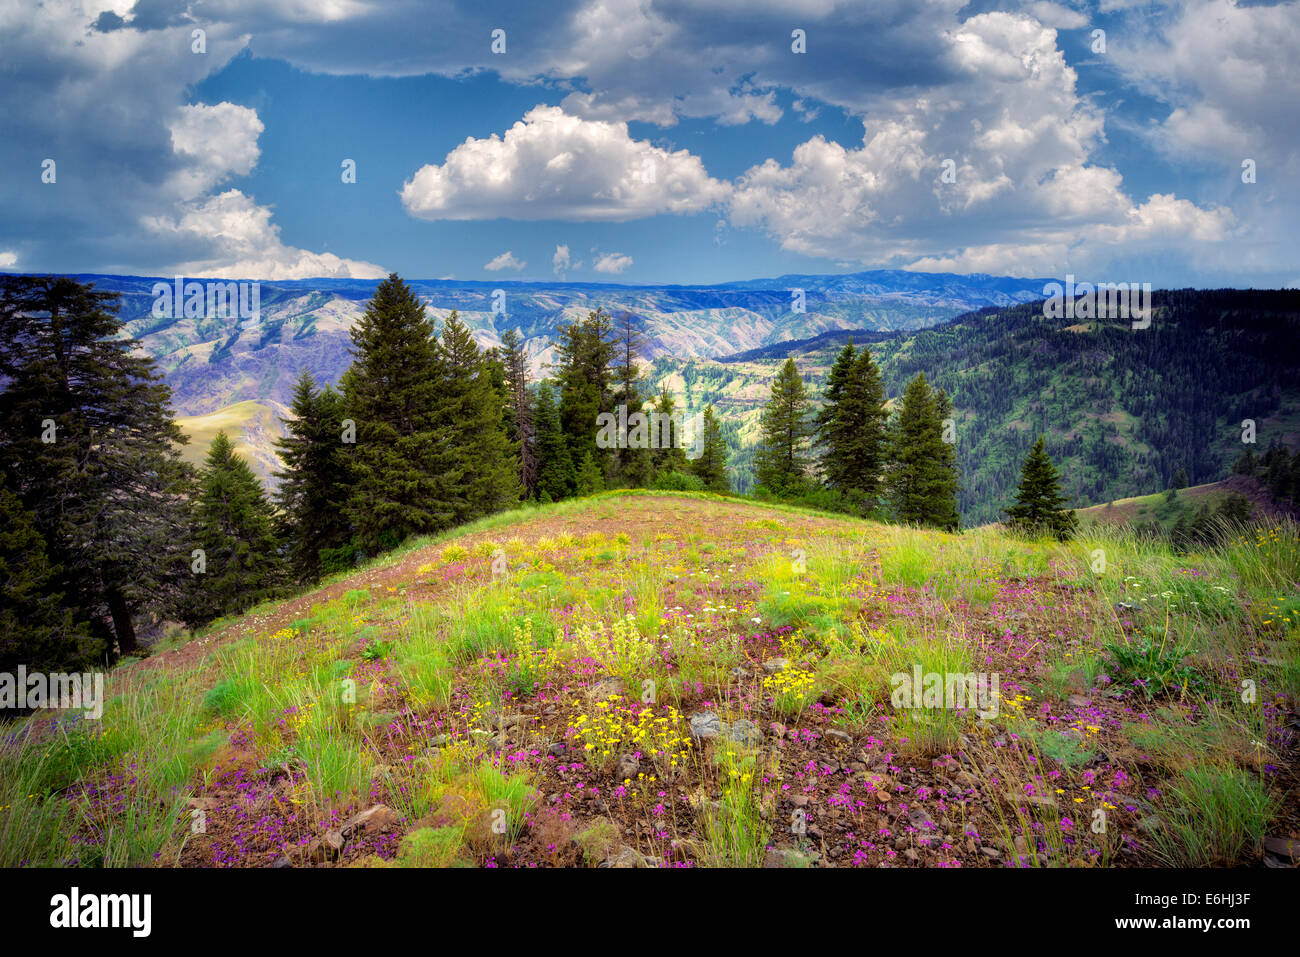 Wildflowers and clouds. Hell's Canyon Overlook, Oregon - Stock Image